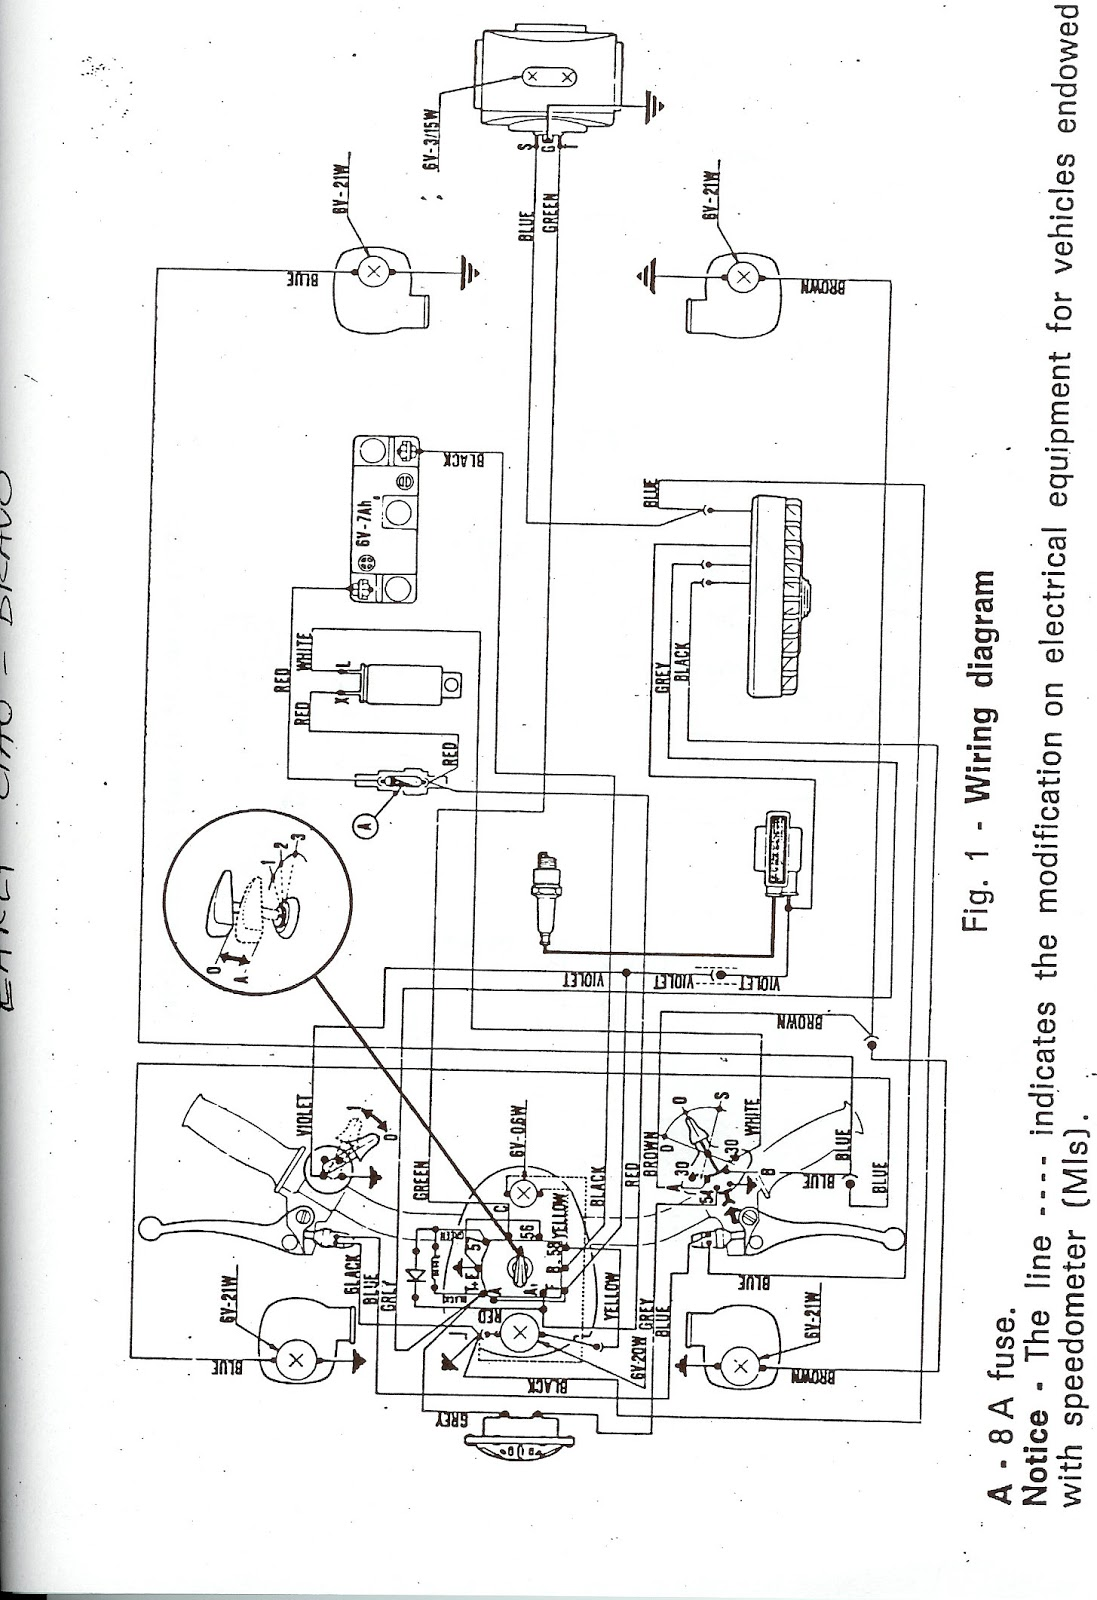 Peugeot Boxer Wiring Diagram Download : 37 Wiring Diagram